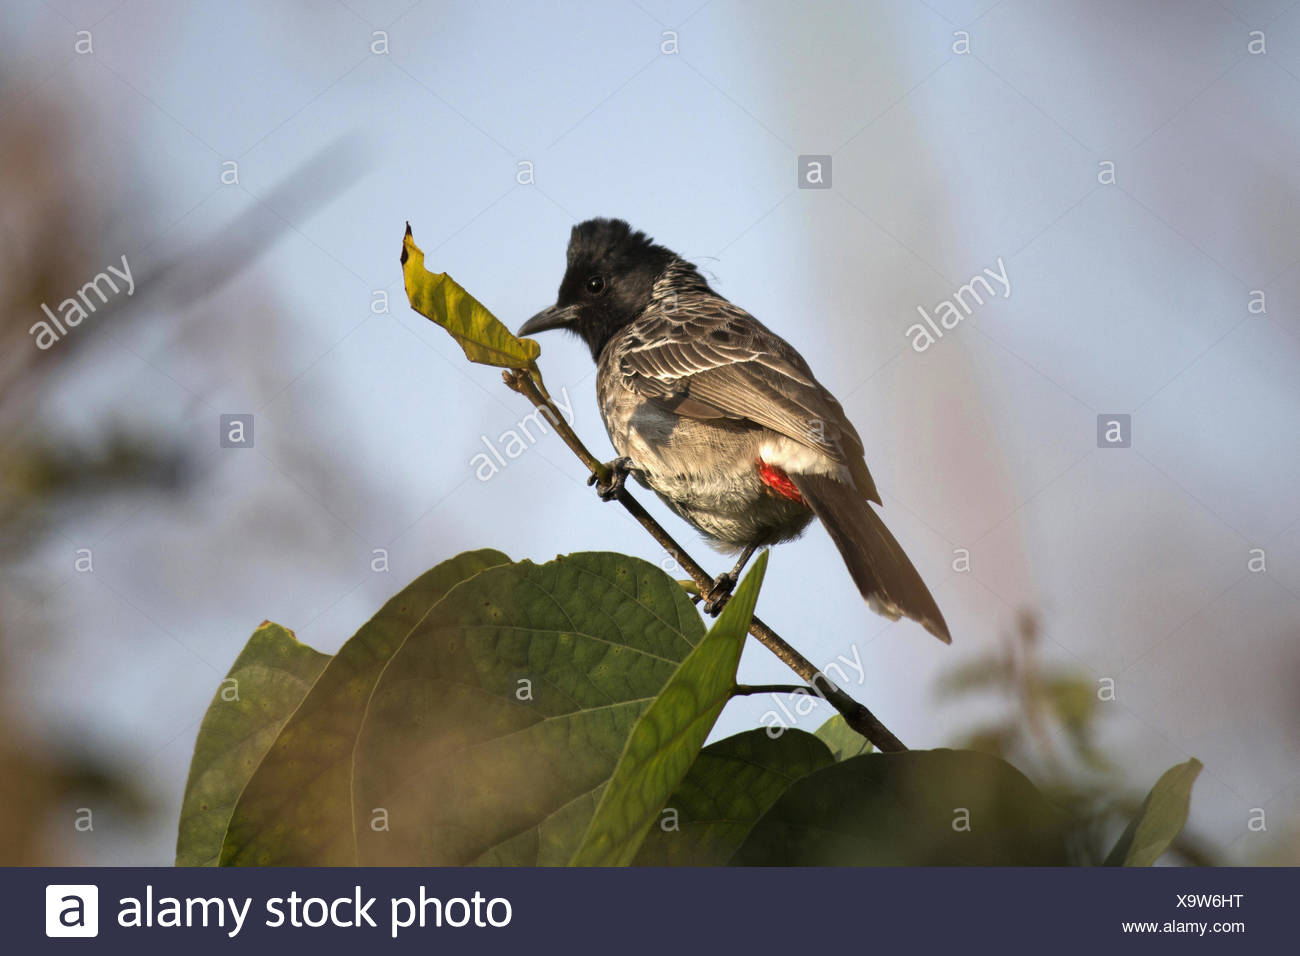 The Red-vented Bulbul (Pycnonotus cafer) is a member of the bulbul family of passerines. - Stock Image